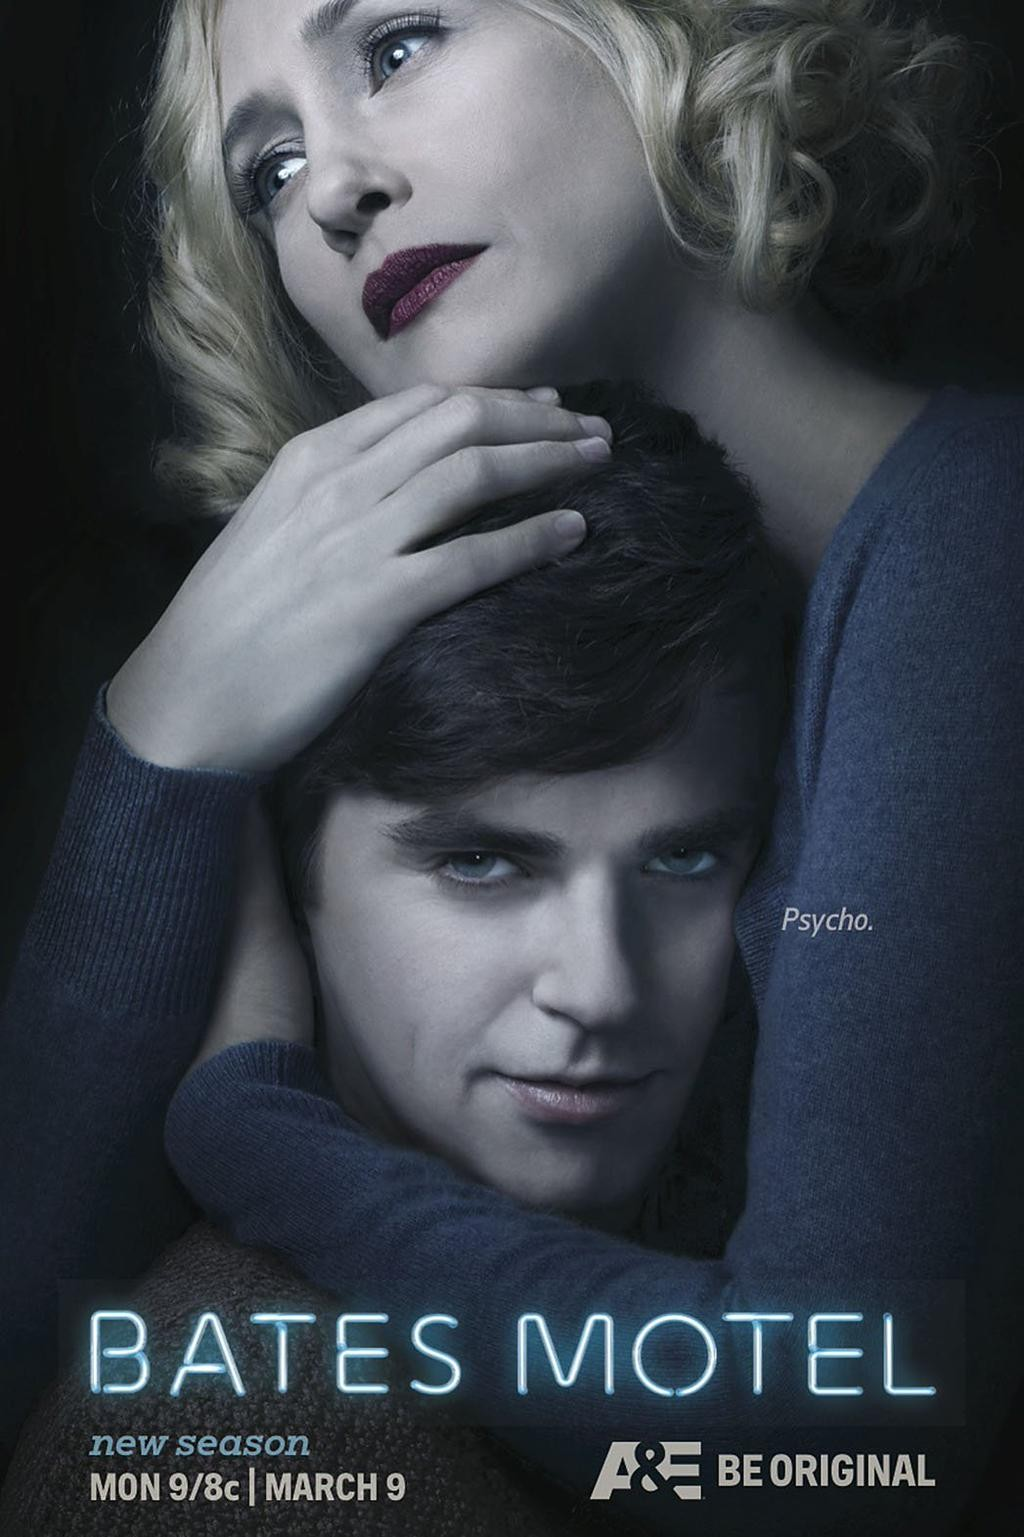 Bates Motel Season 3 惊魂序曲 第三季